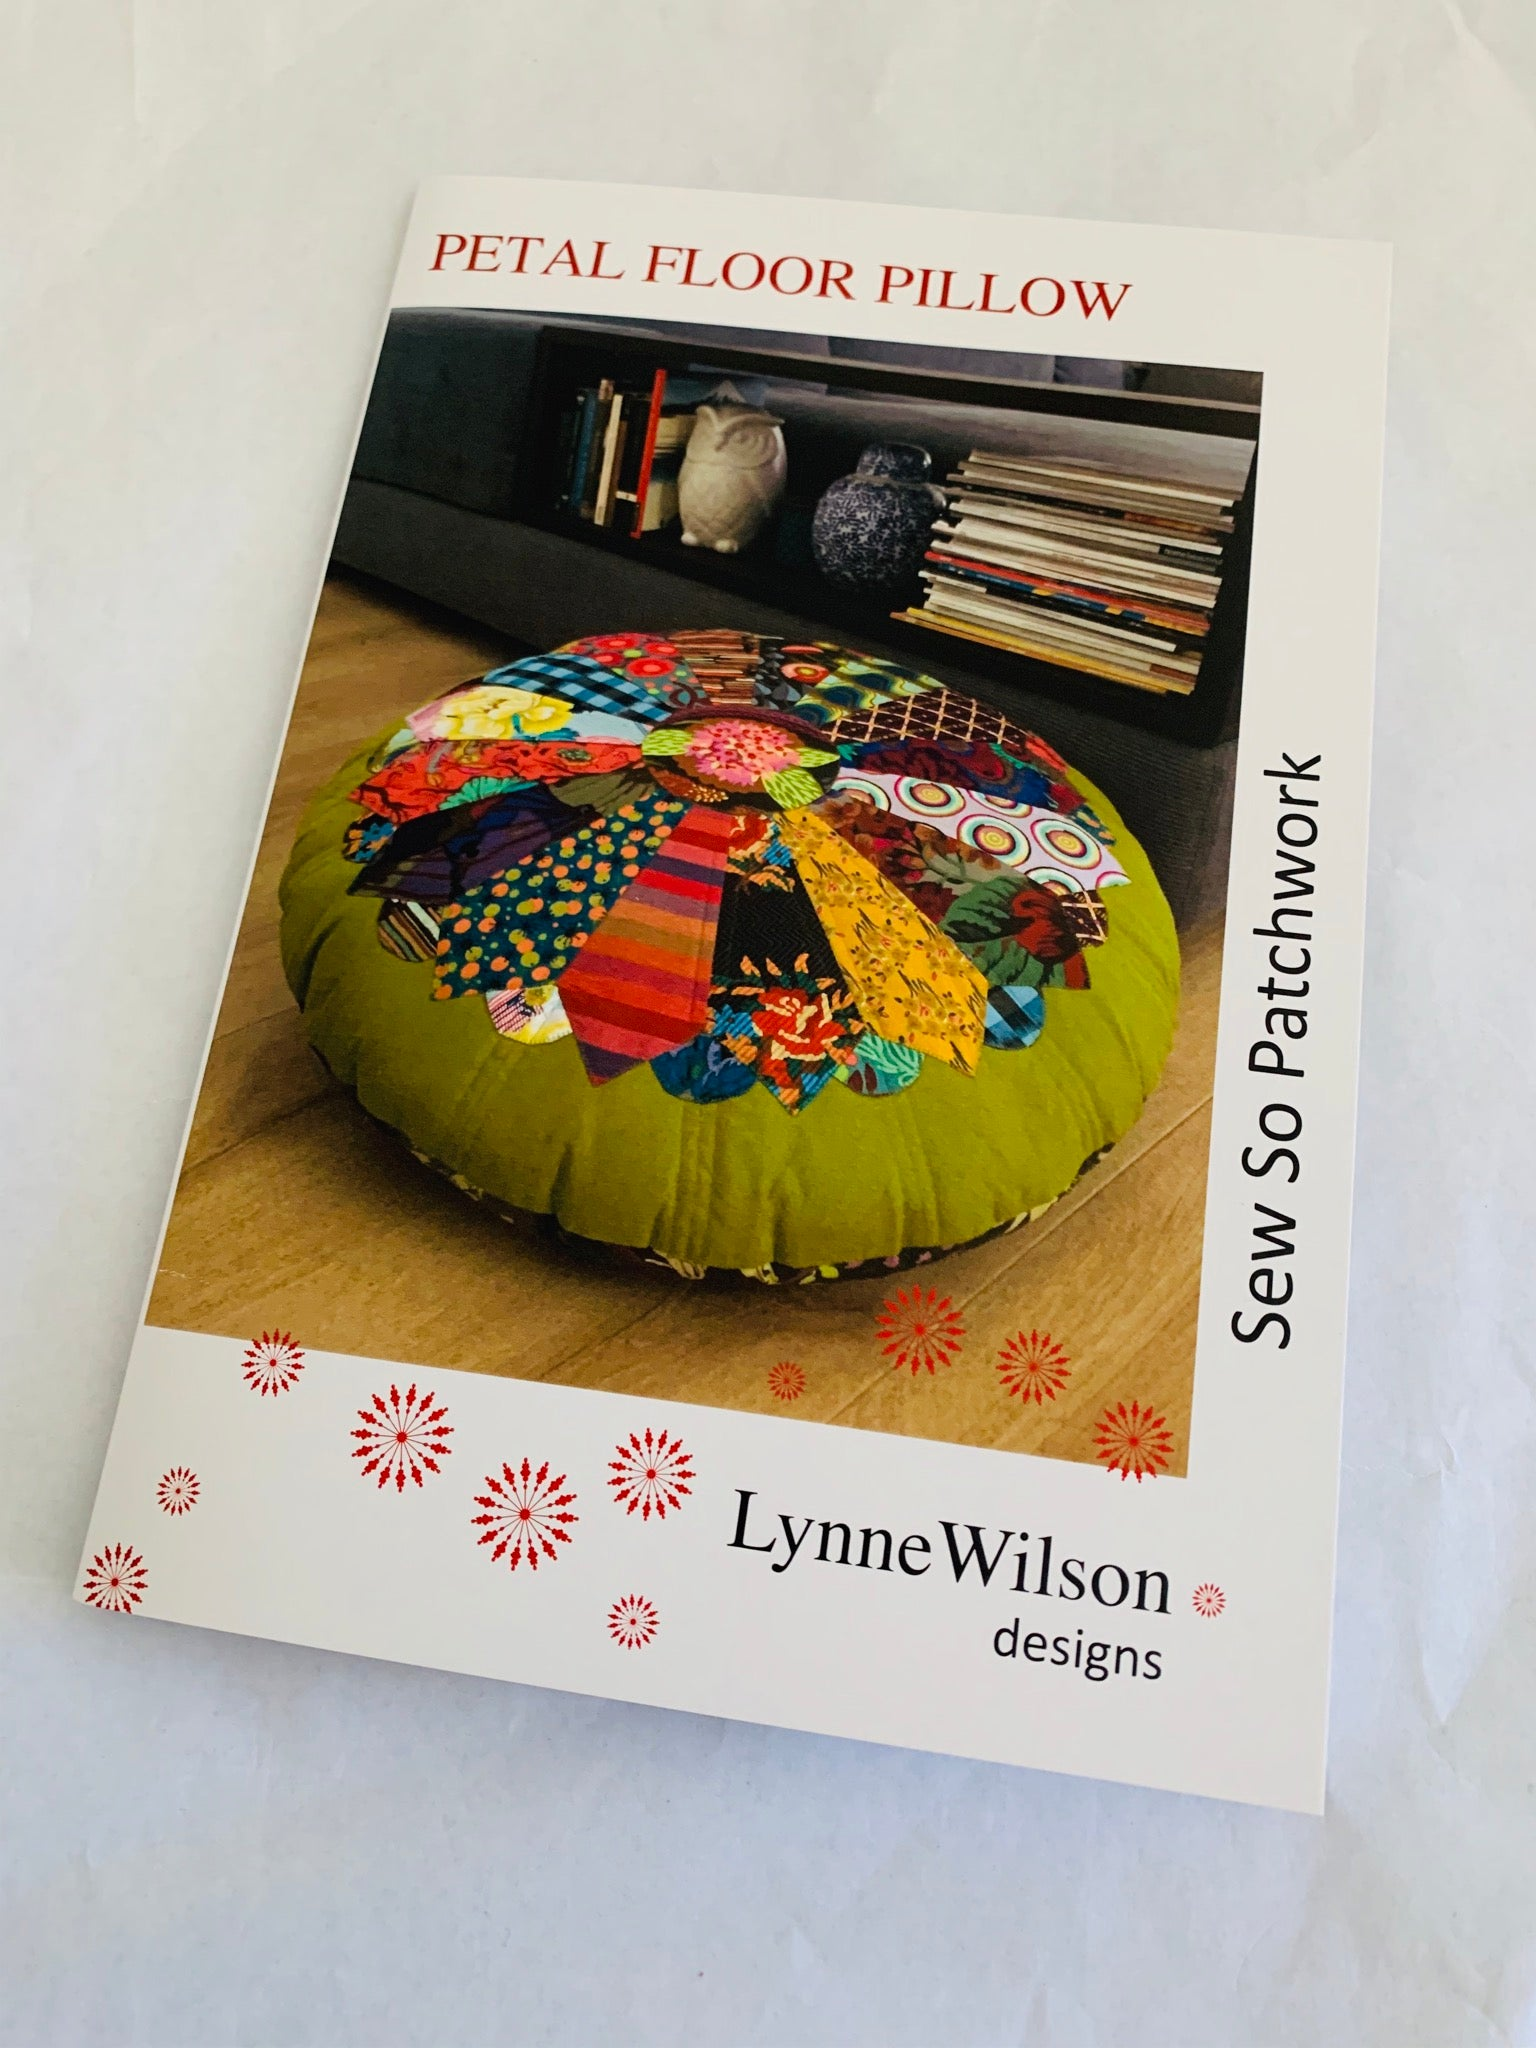 Lynne Wilson Designs: Petal Floor Pillow